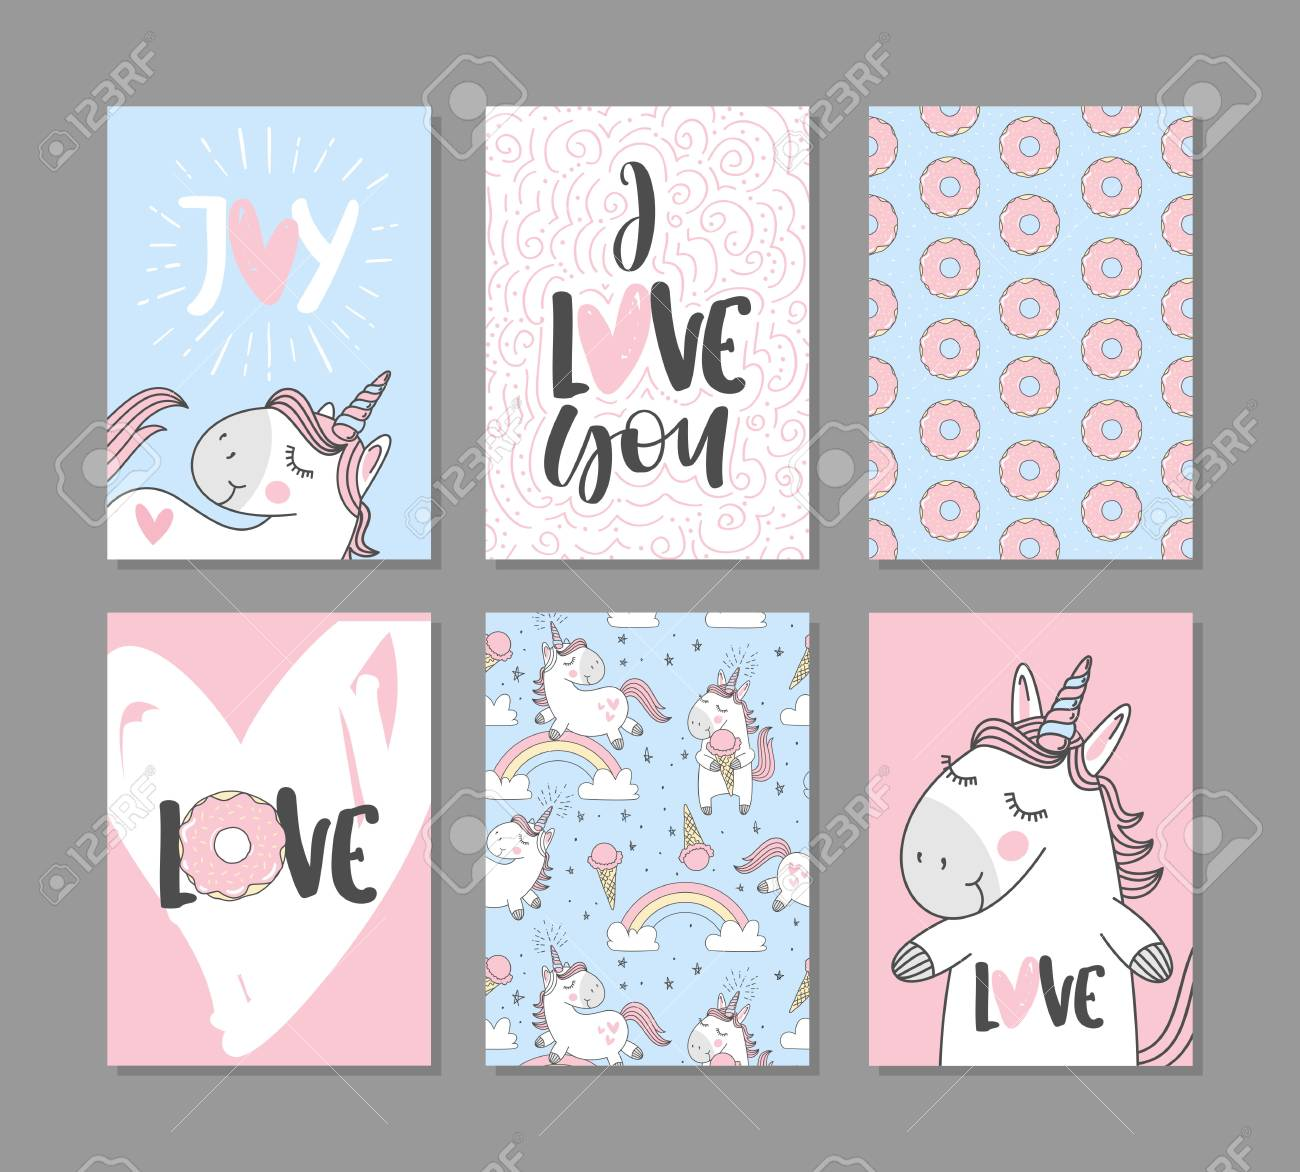 Romantic greeting cards with cute unicorns hand written text romantic greeting cards with cute unicorns hand written text stock vector 90928812 m4hsunfo